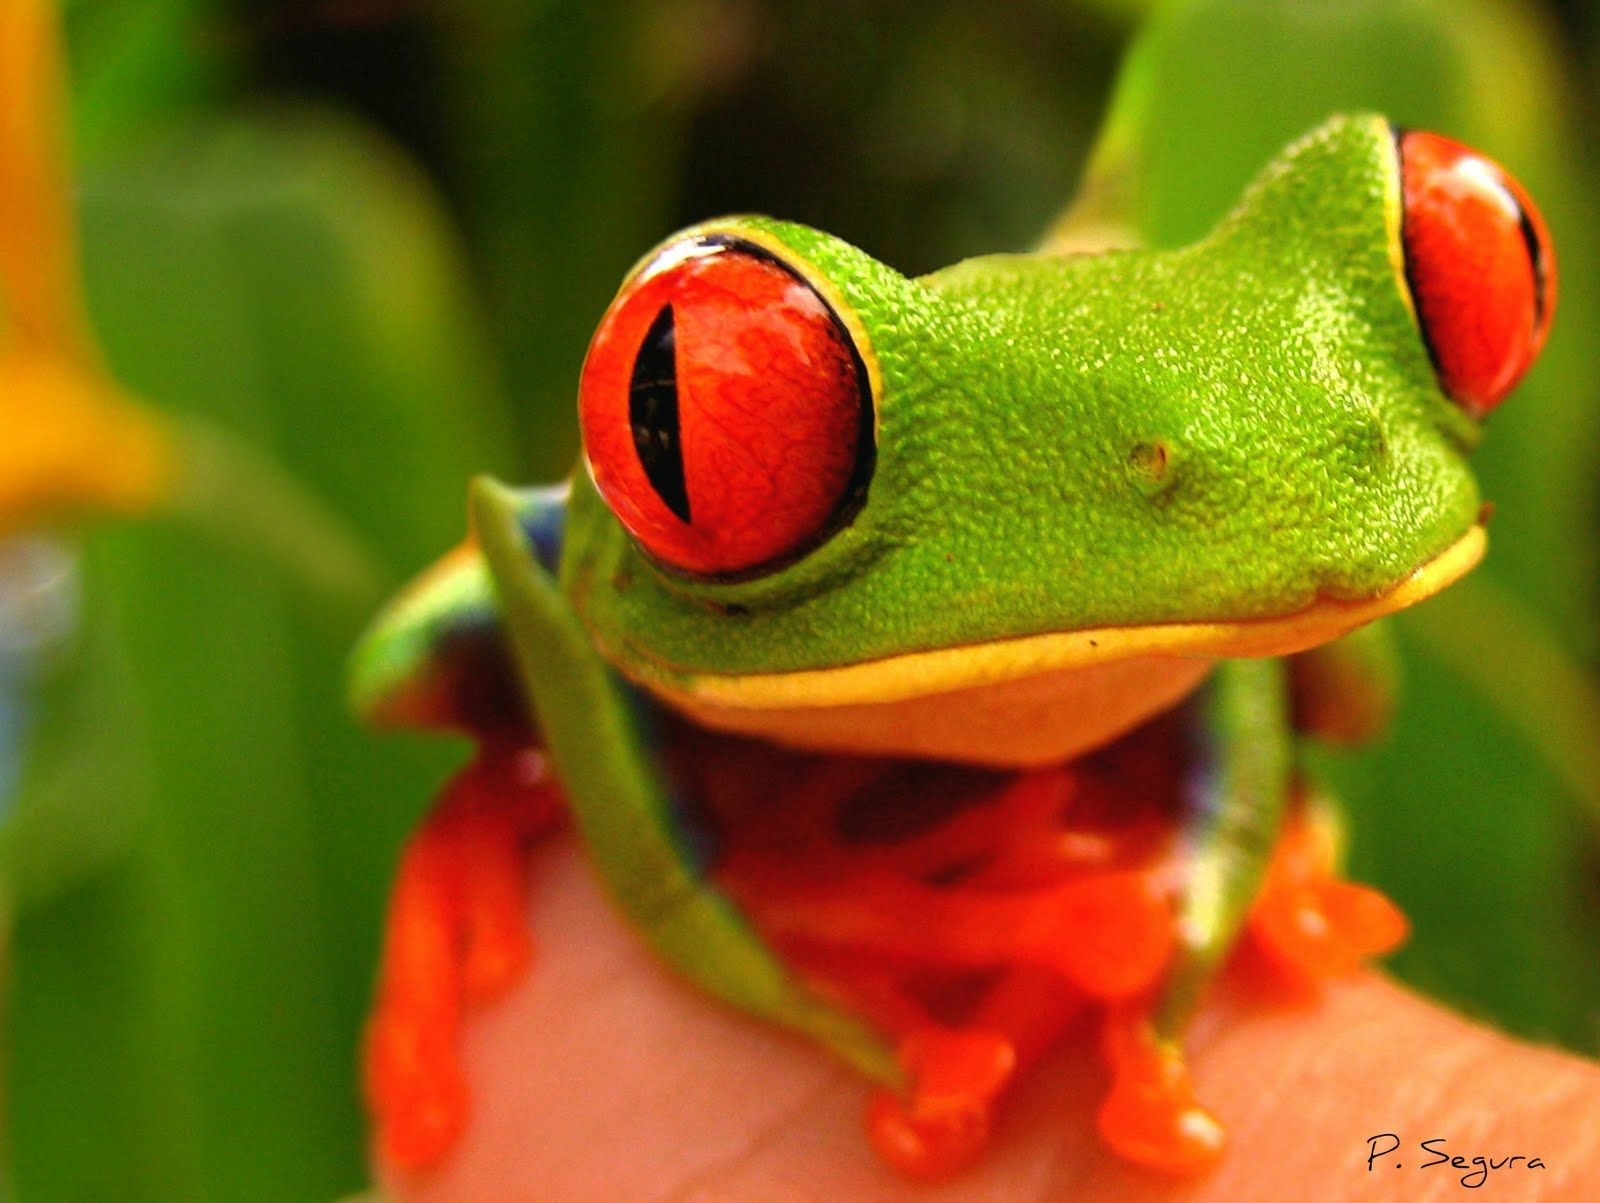 The redeye frog! the bright red eyes are form of